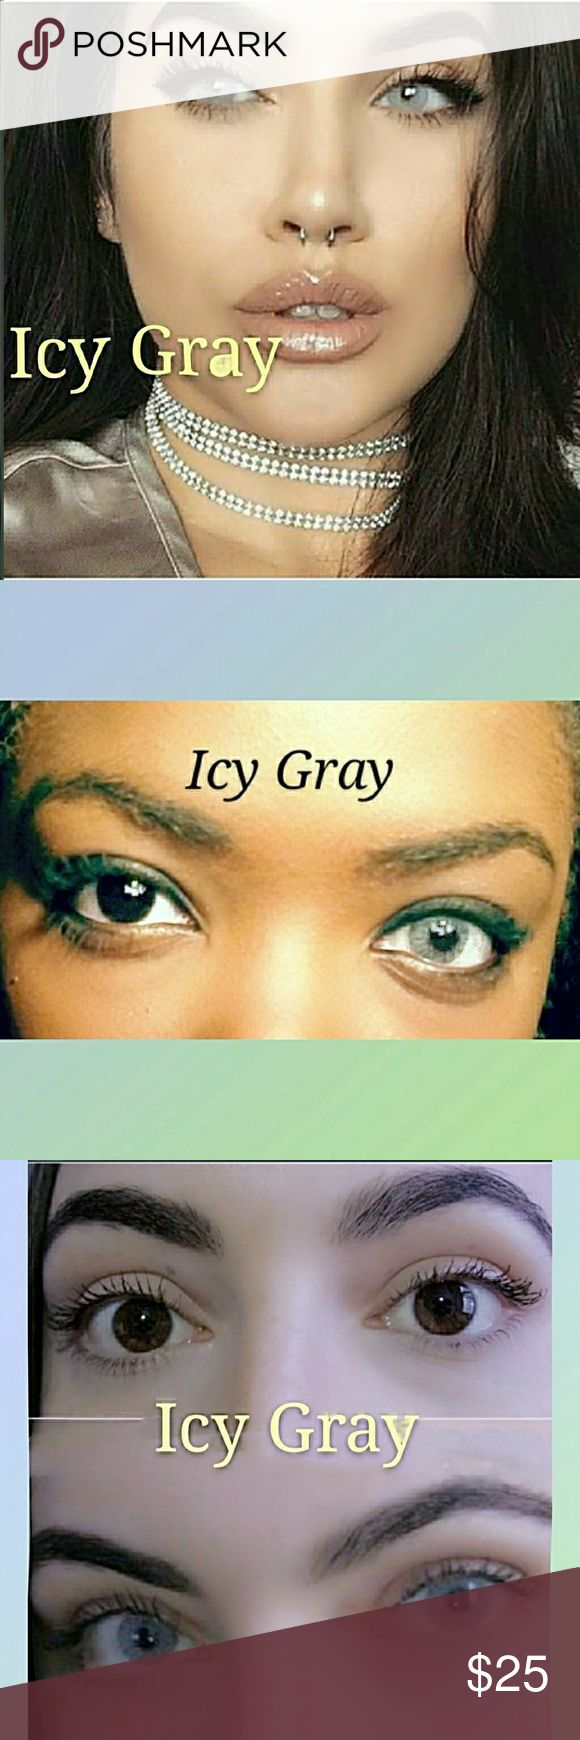 🎀 Icy Gray COLOR CONTACT LENSES ✔ Fast Shipping  ✔ Brand New in box ✔ lasts twelv months with proper care.  🚫 Please Note that my Birthday sale has ended. Price Firm Thank You Lovlies💋  Do Bundle for a private offer and save on Shipping! 🙌🙌 Makeup